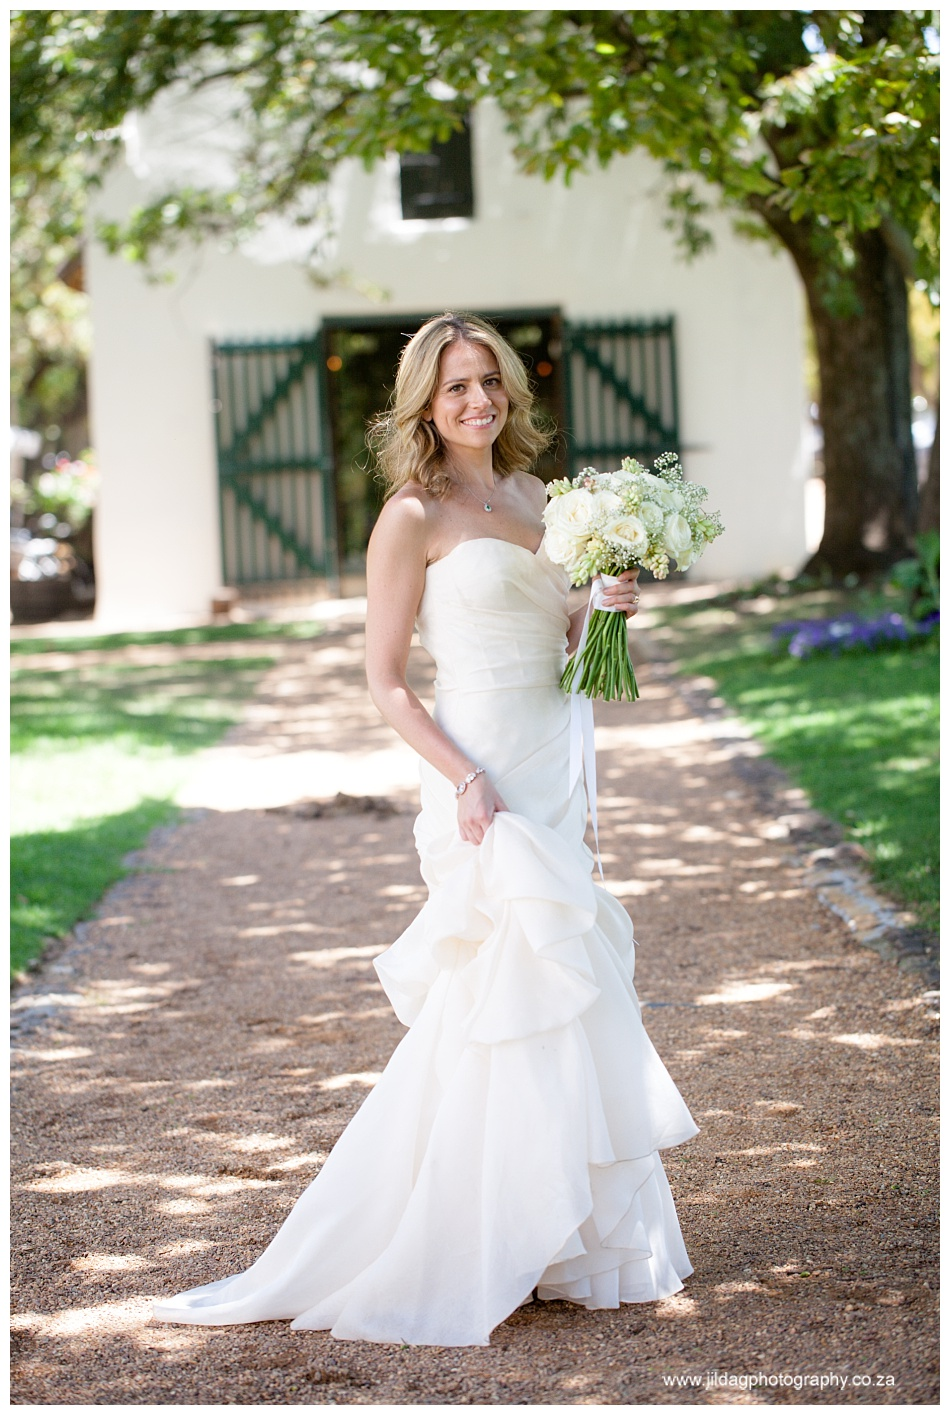 Jilda-G-Photography-Boschendal-wedding_1170